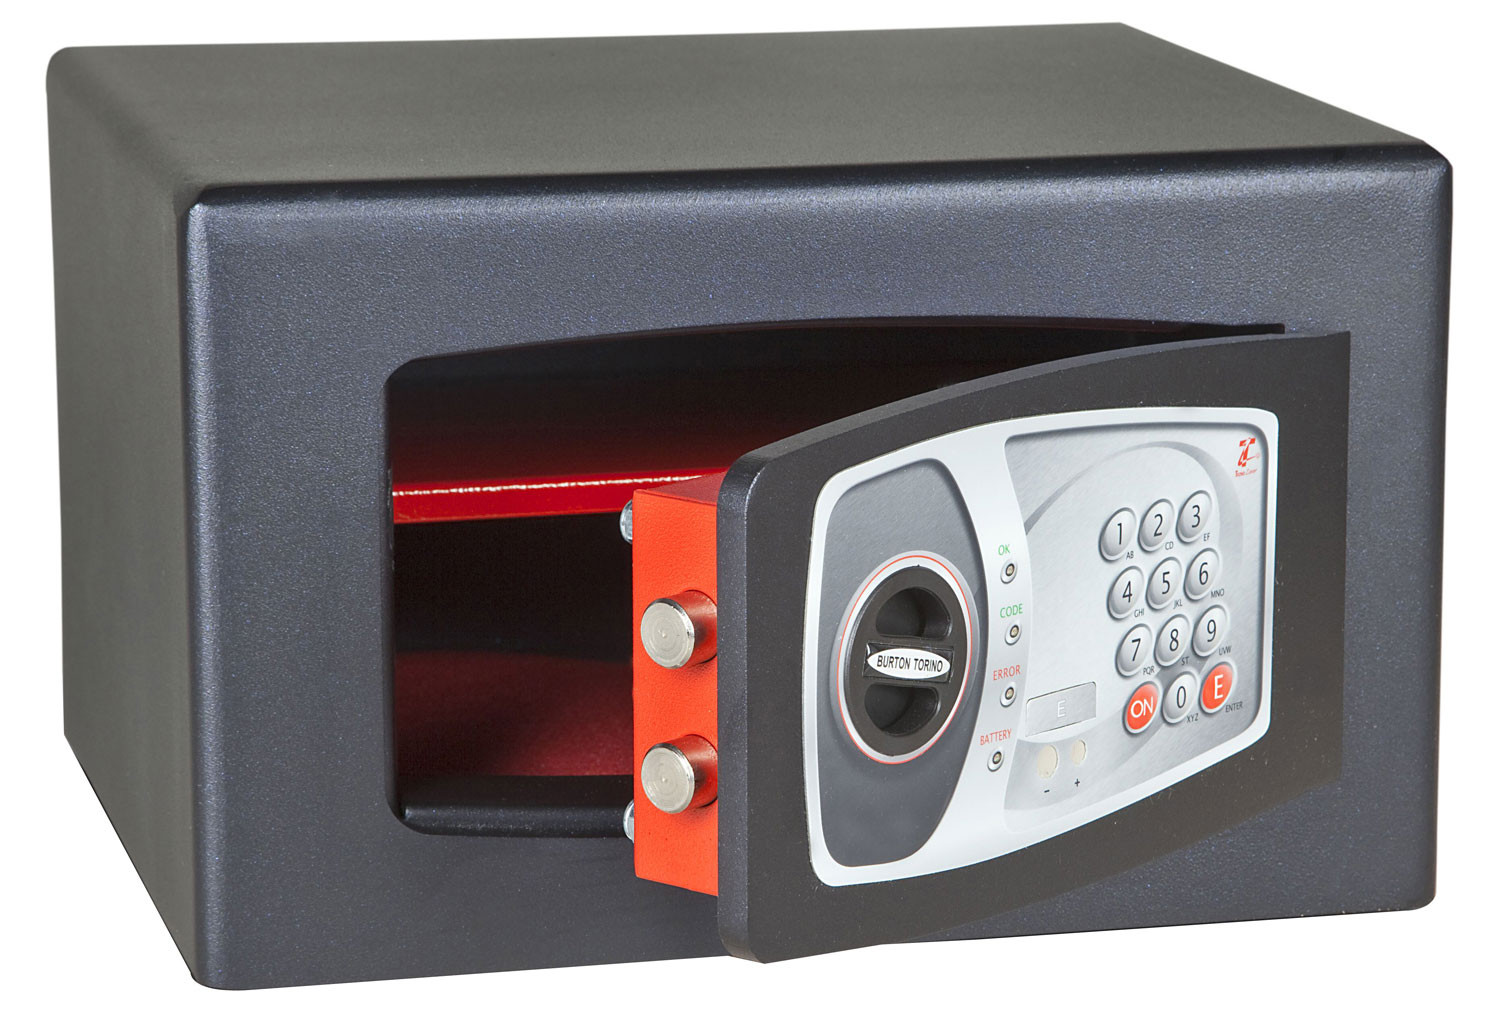 Burton Torino S2 Size 1 Safe With Electronic Lock (16ltrs)